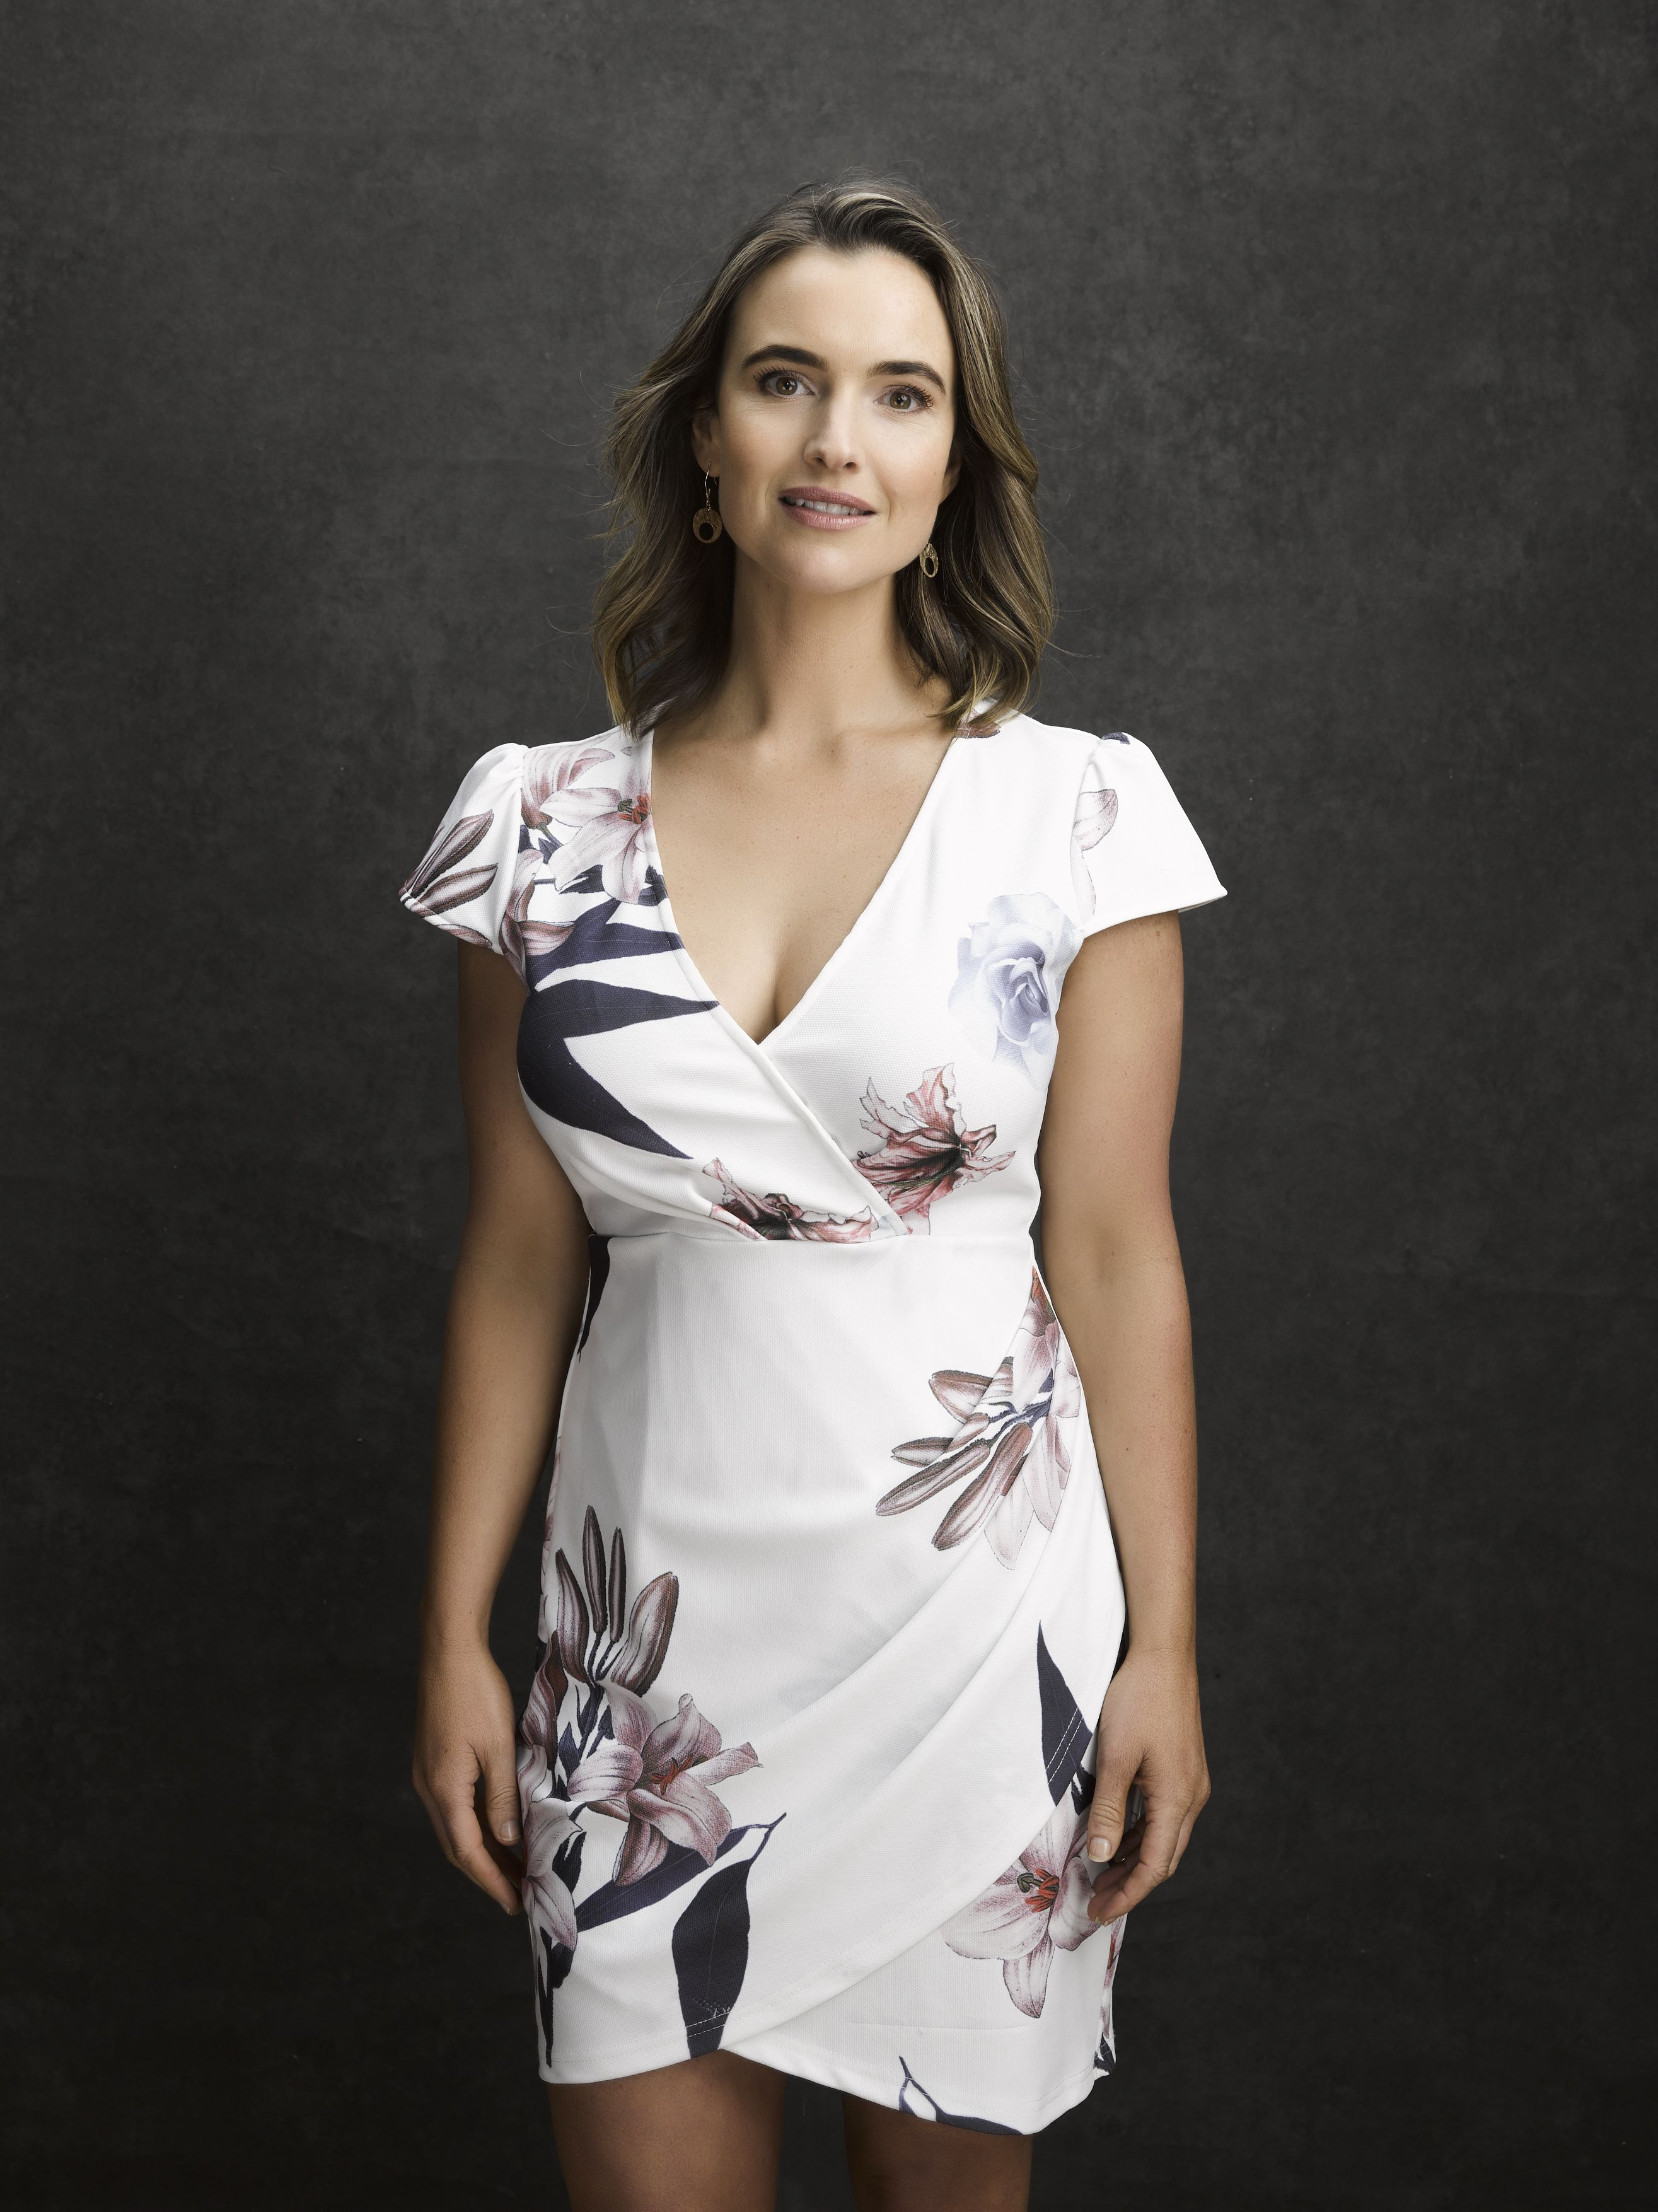 Neighbours' Amy Williams hears worrying news about Jimmy